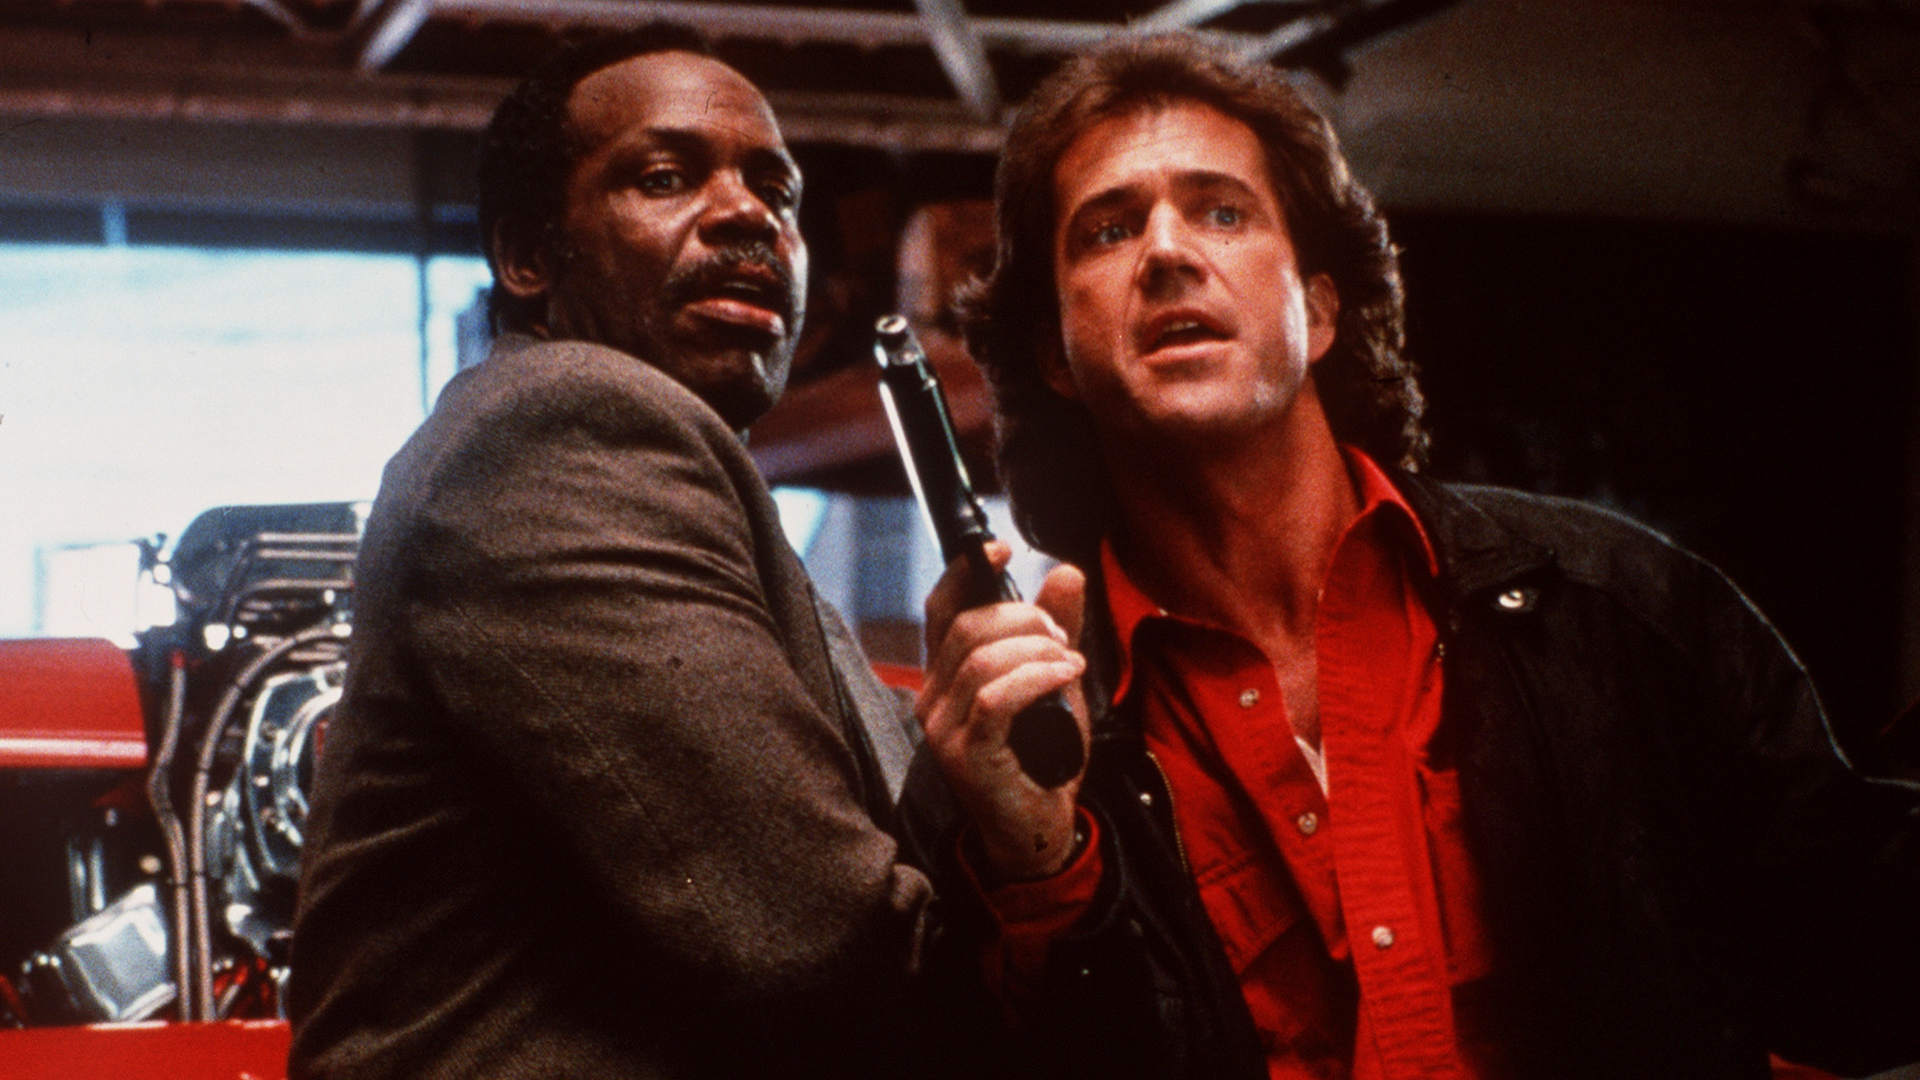 Danny Glover and Mel Gibson in Lethal Weapon 3